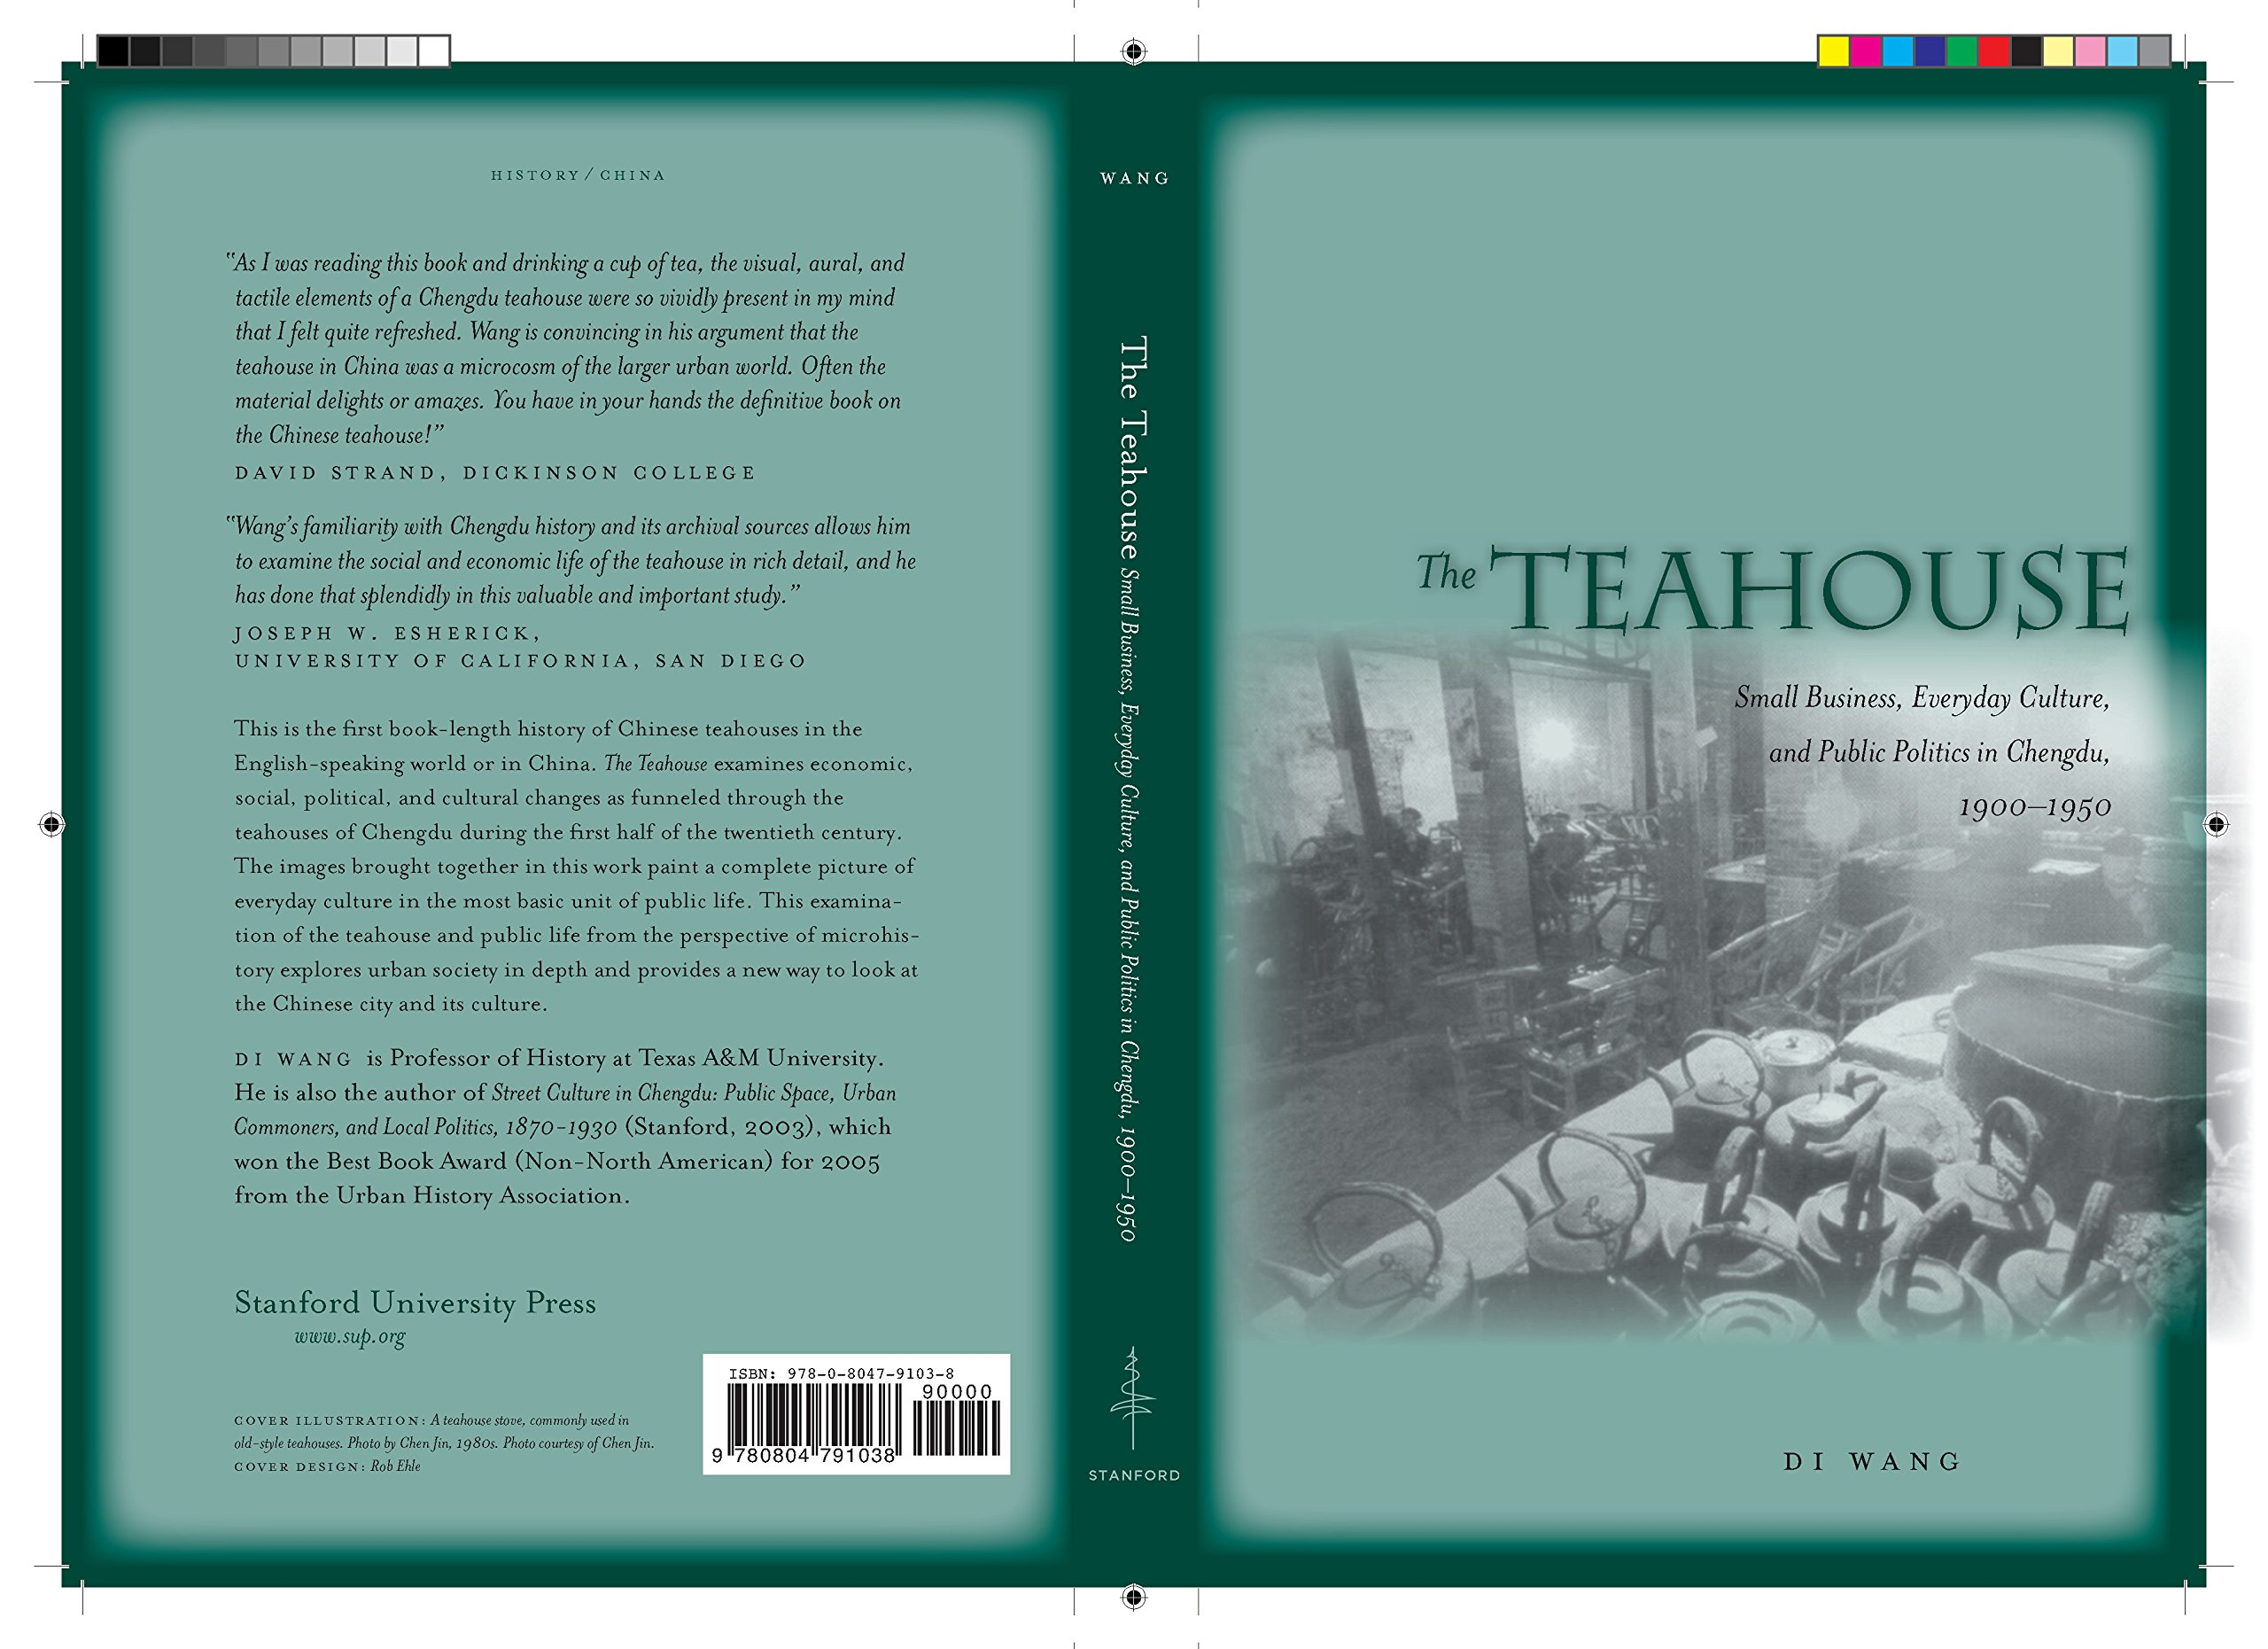 The Teahouse: Small Business, Everyday Culture, and Public